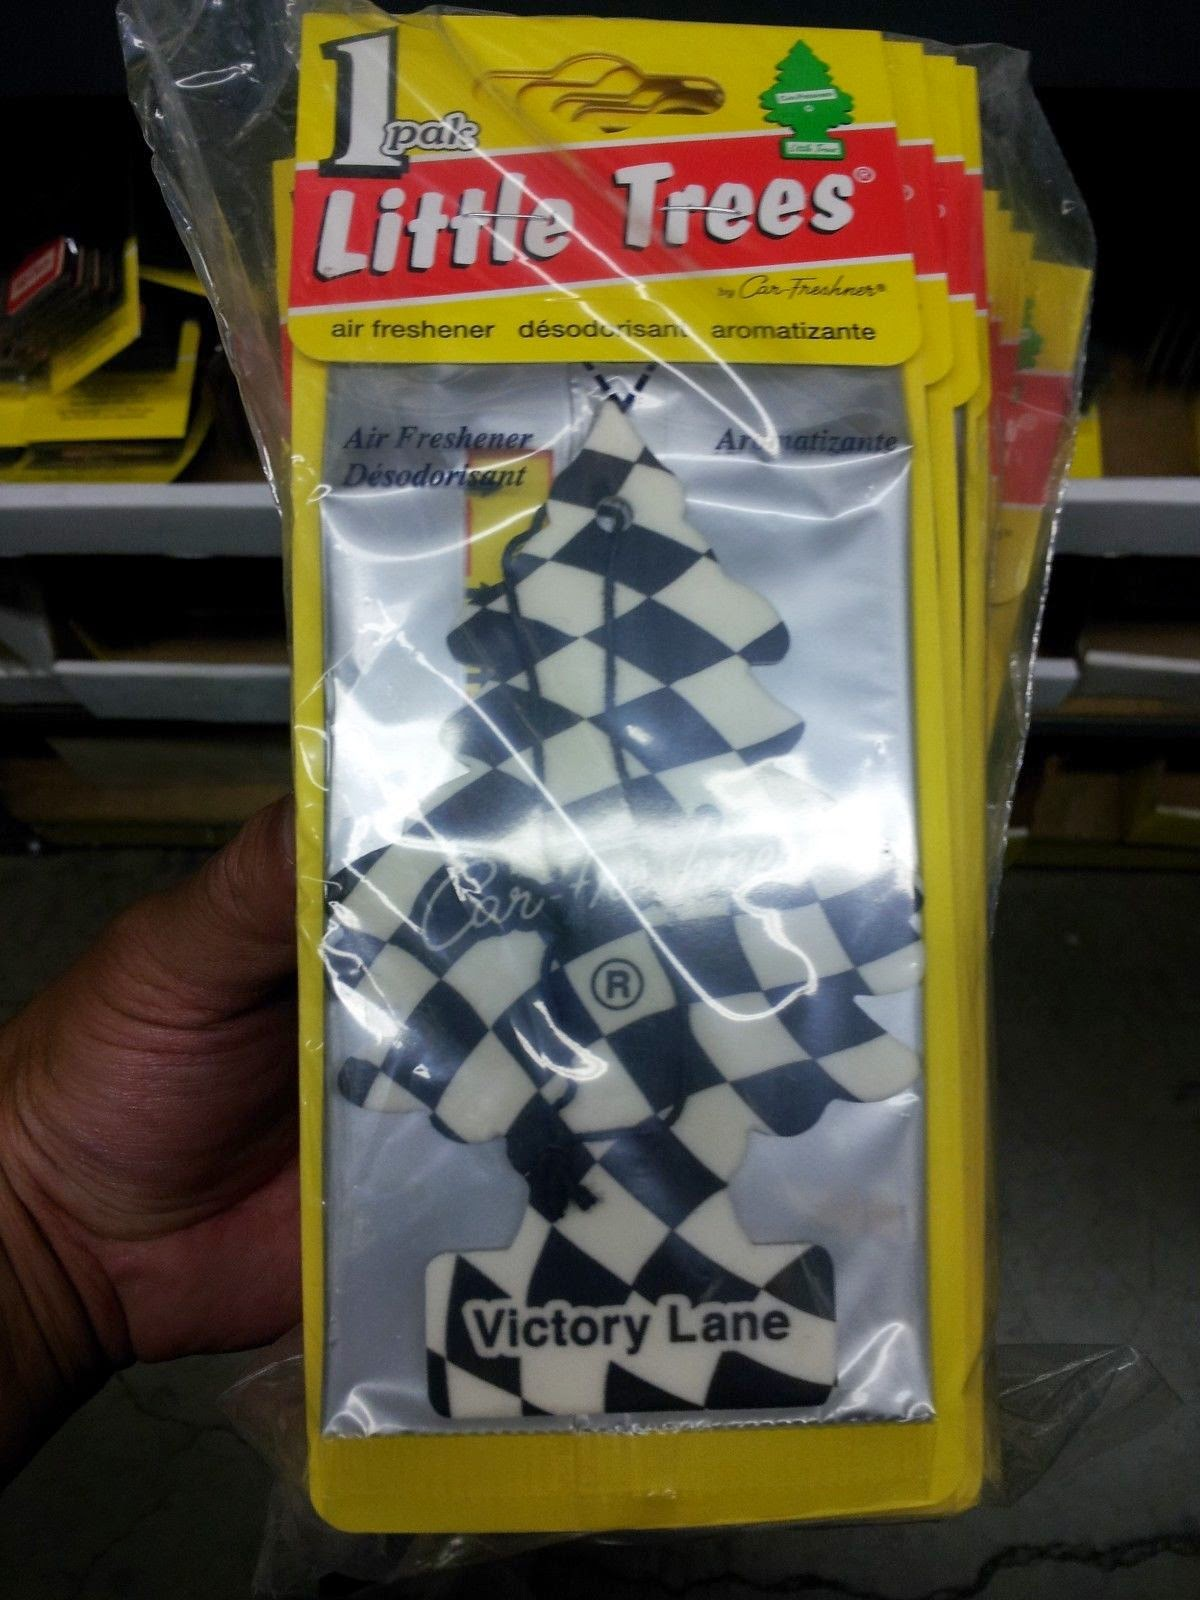 http://www.ebay.com/itm/Little-Trees-Hanging-Car-and-Home-Air-Freshener-Victory-Lane-Pack-of-24-/141464261239